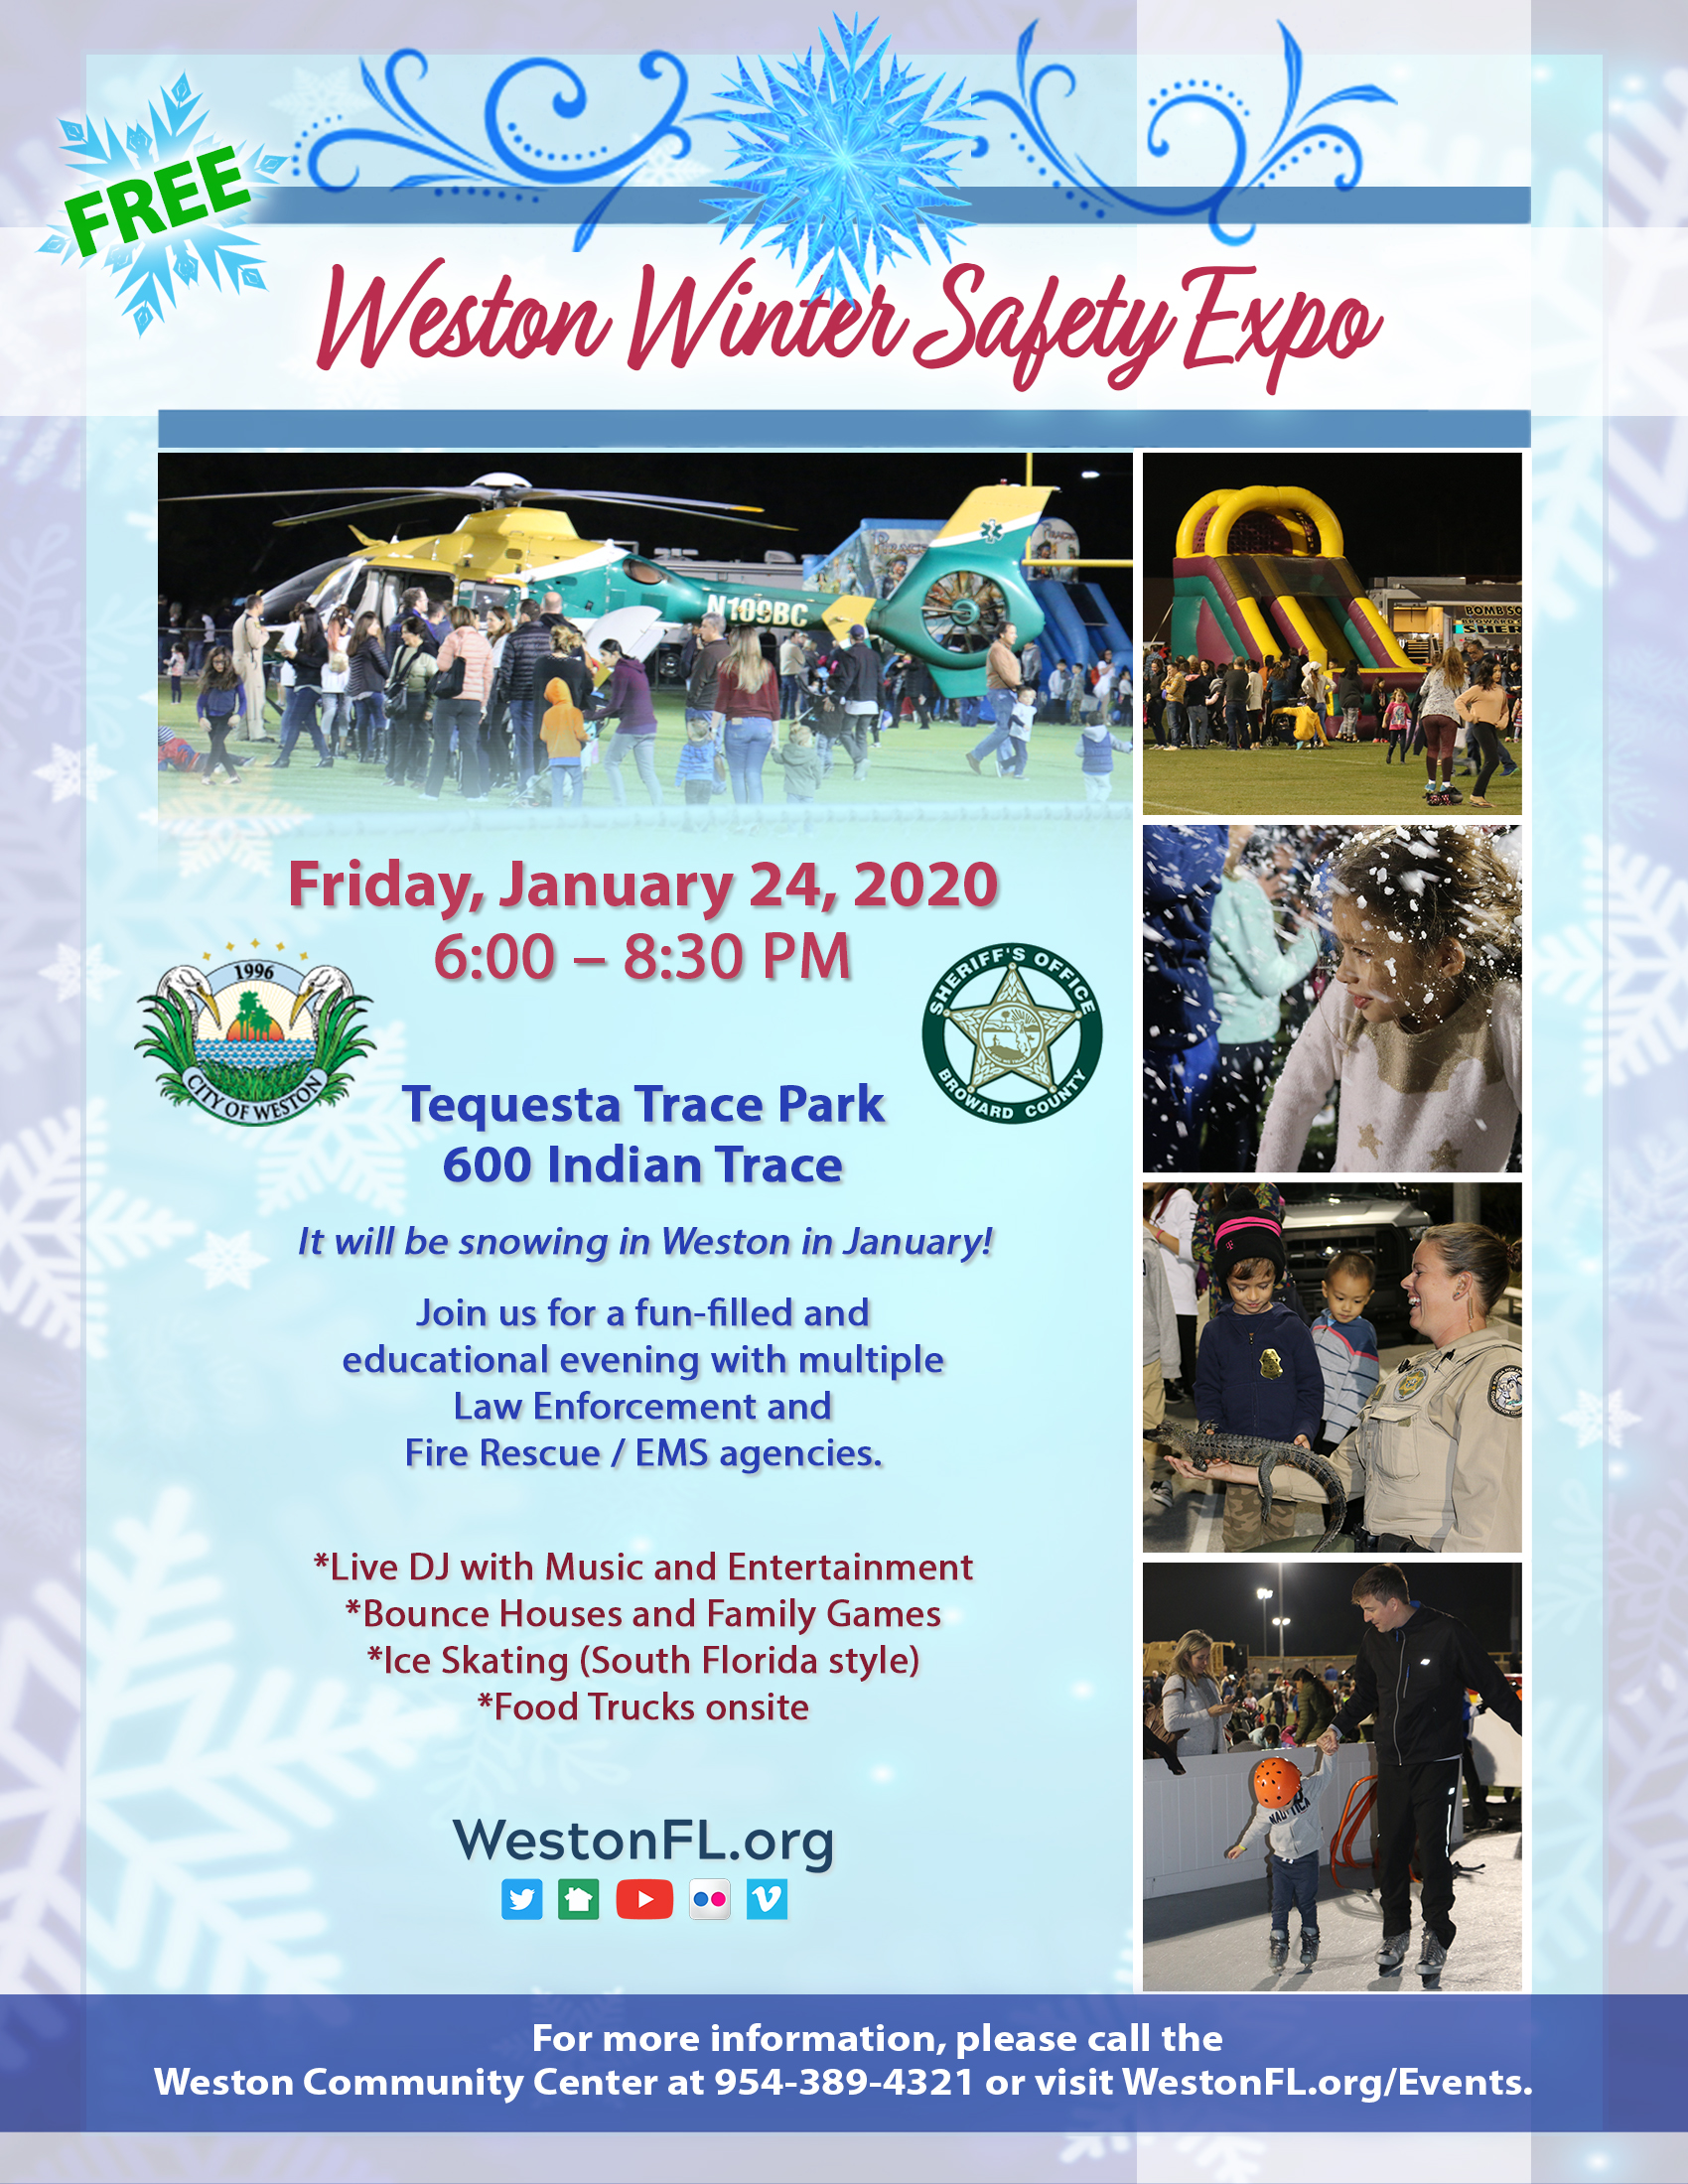 Weston Winter Safety Expo Flyer with pictures, time and place of event